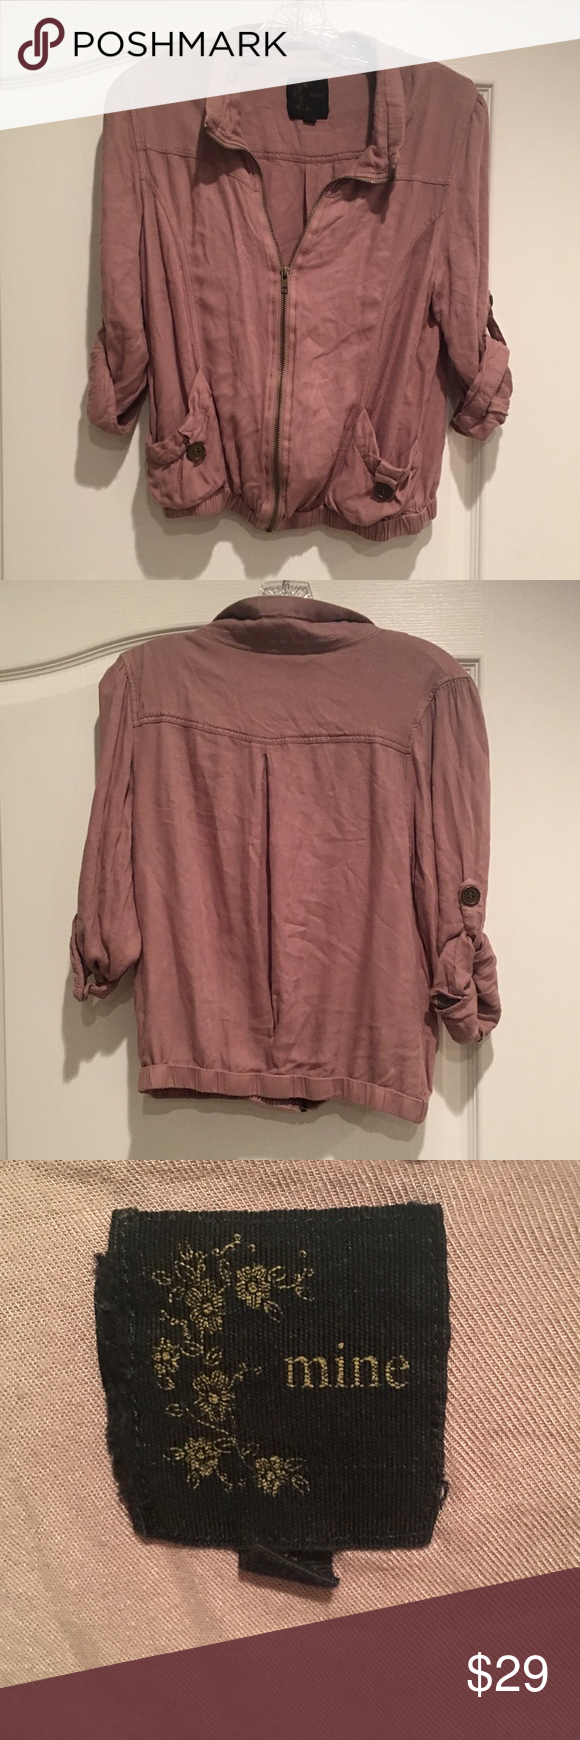 MINE Crop Jacket Mauve colored jacket with roll button sleeves (can be worn up or down) Cropped style with an elastic waist. Some wear but still very good condition. Anthropologie Jackets & Coats